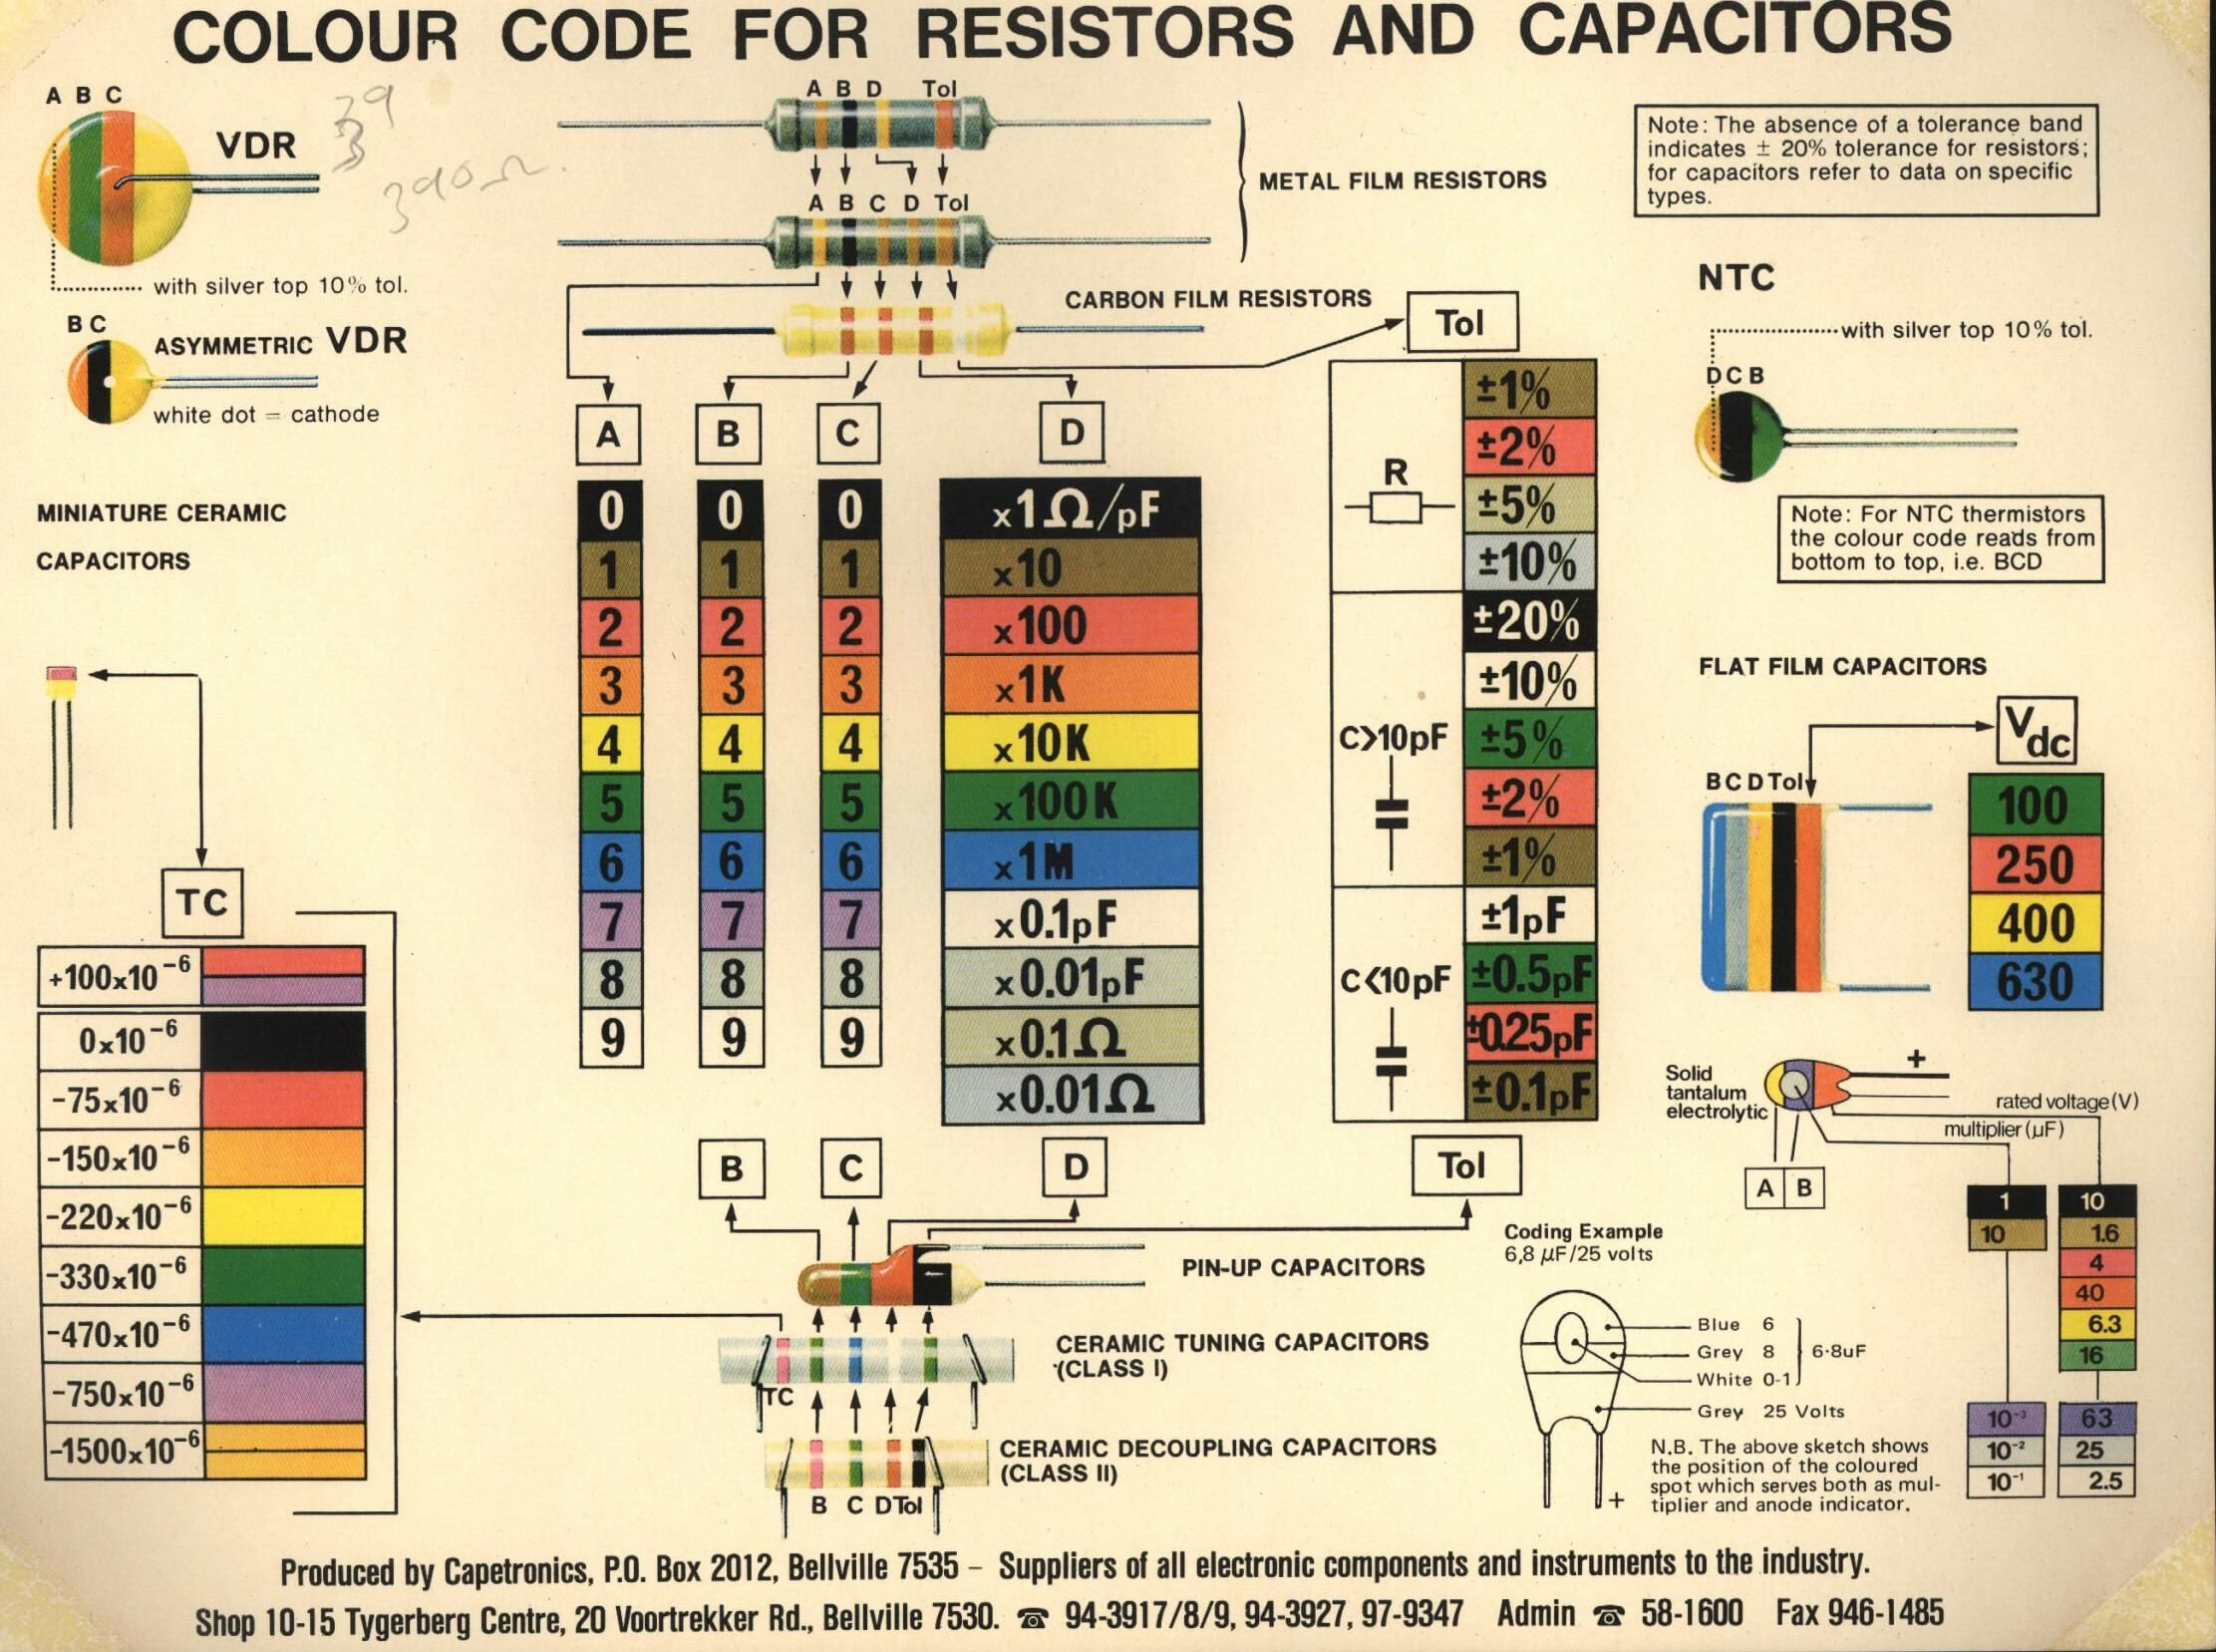 Resistor capacitor color codeg 22231657 circuit symbols resistor capacitor color codeg 22231657 nvjuhfo Gallery